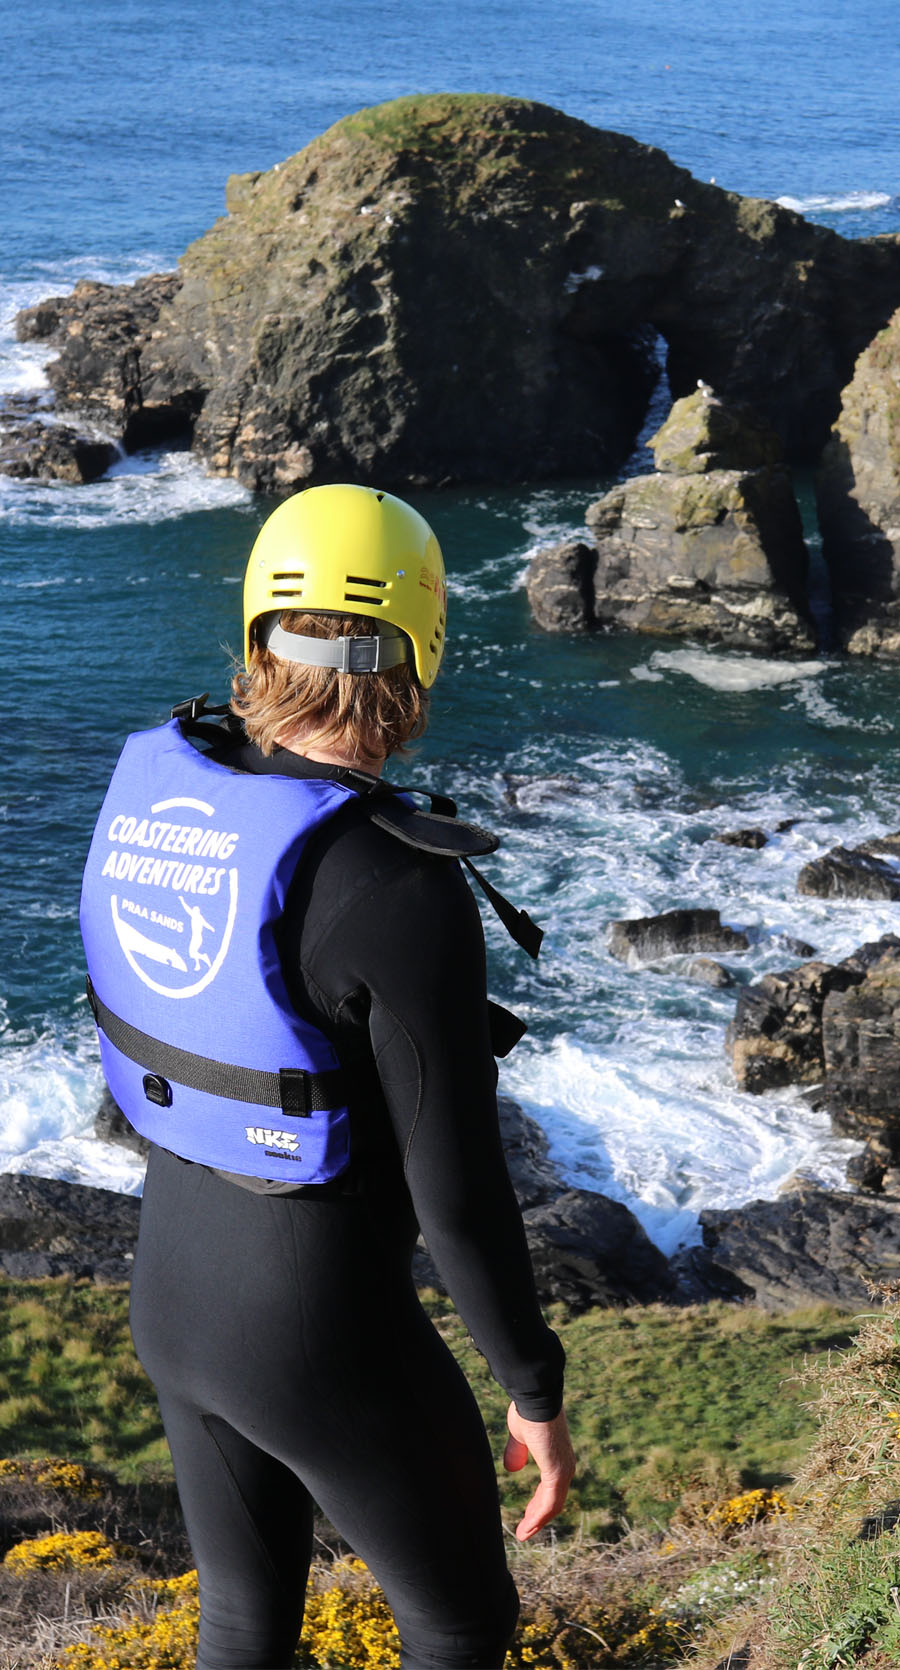 Discover why Praa Sands is one of the best places for coasteering in Cornwall.